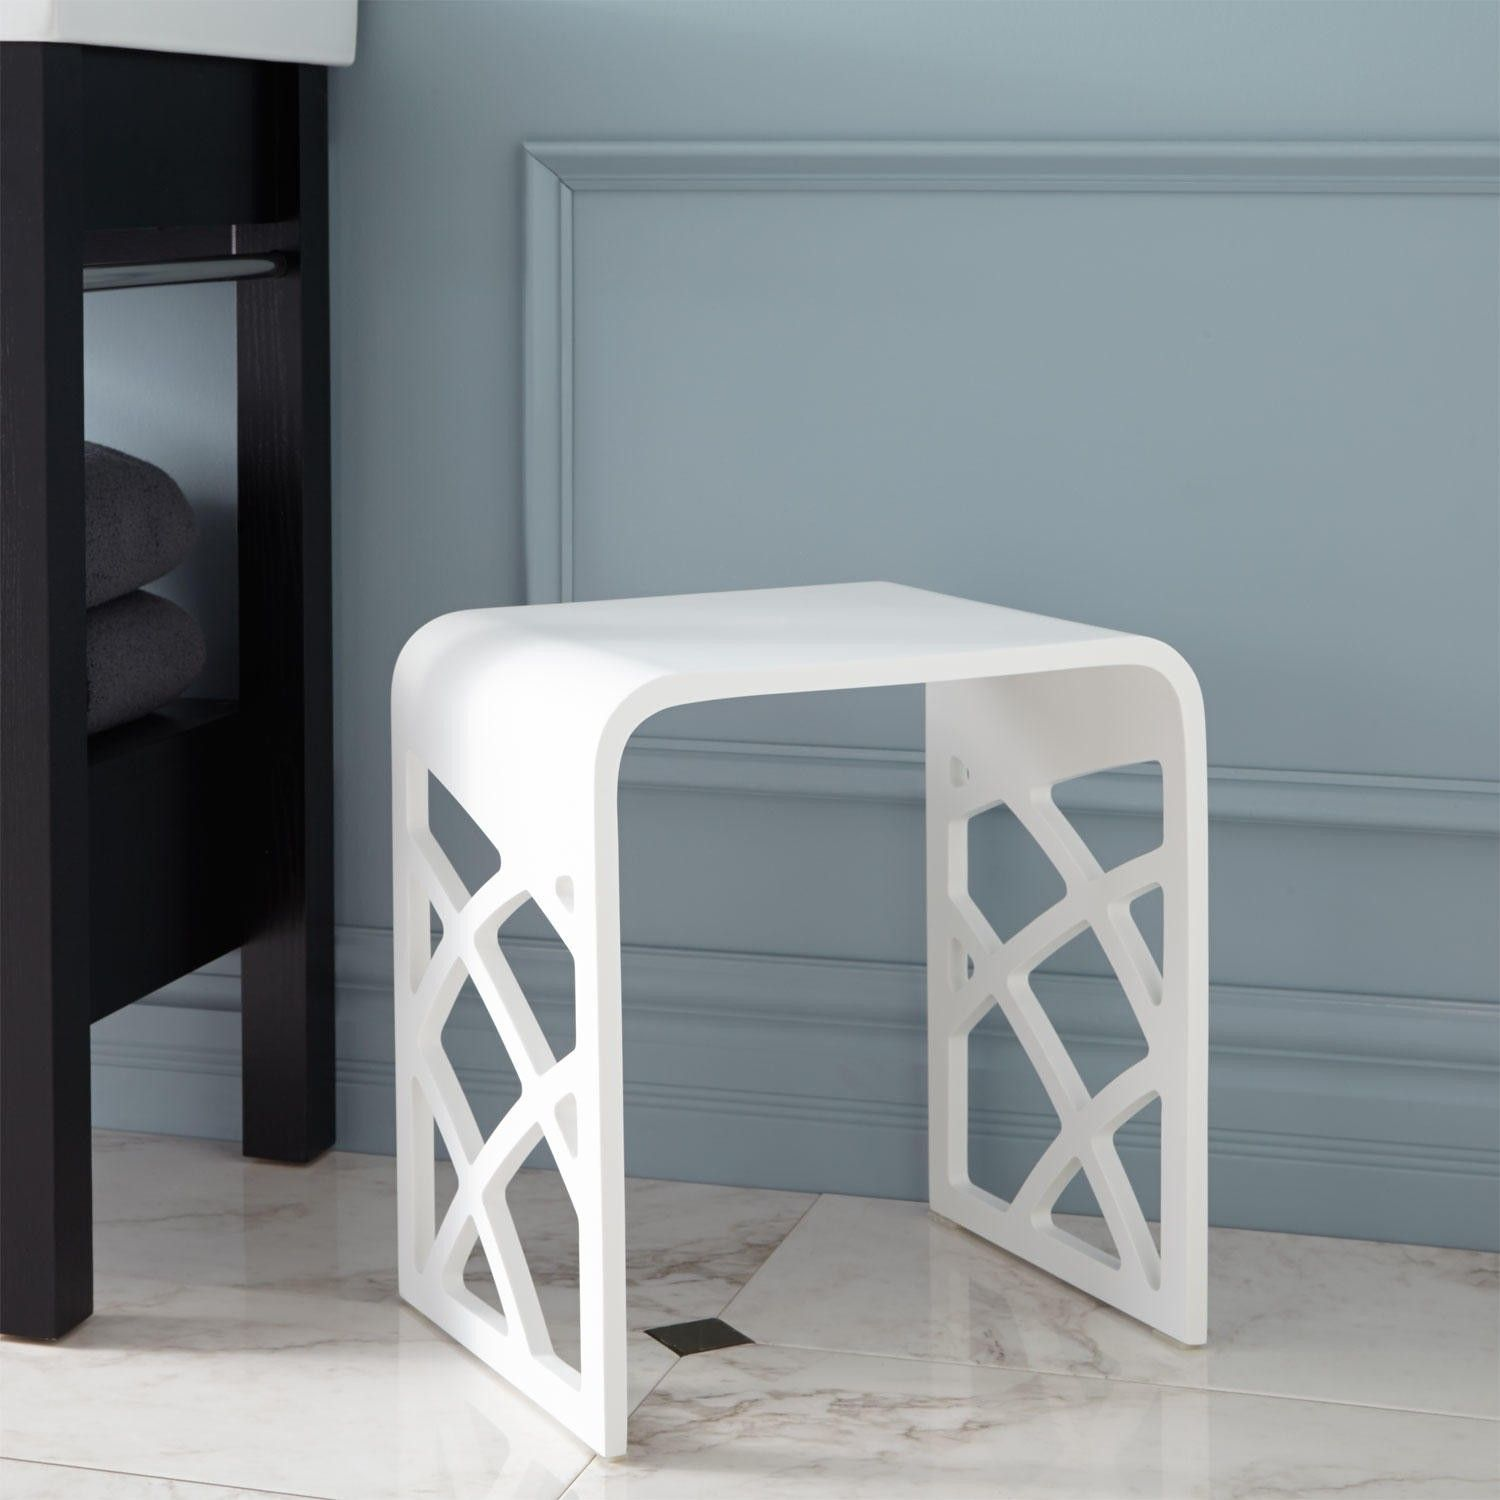 Luyten Resin Bath Stool - White Matte Finish | Bath stool, Stools ...